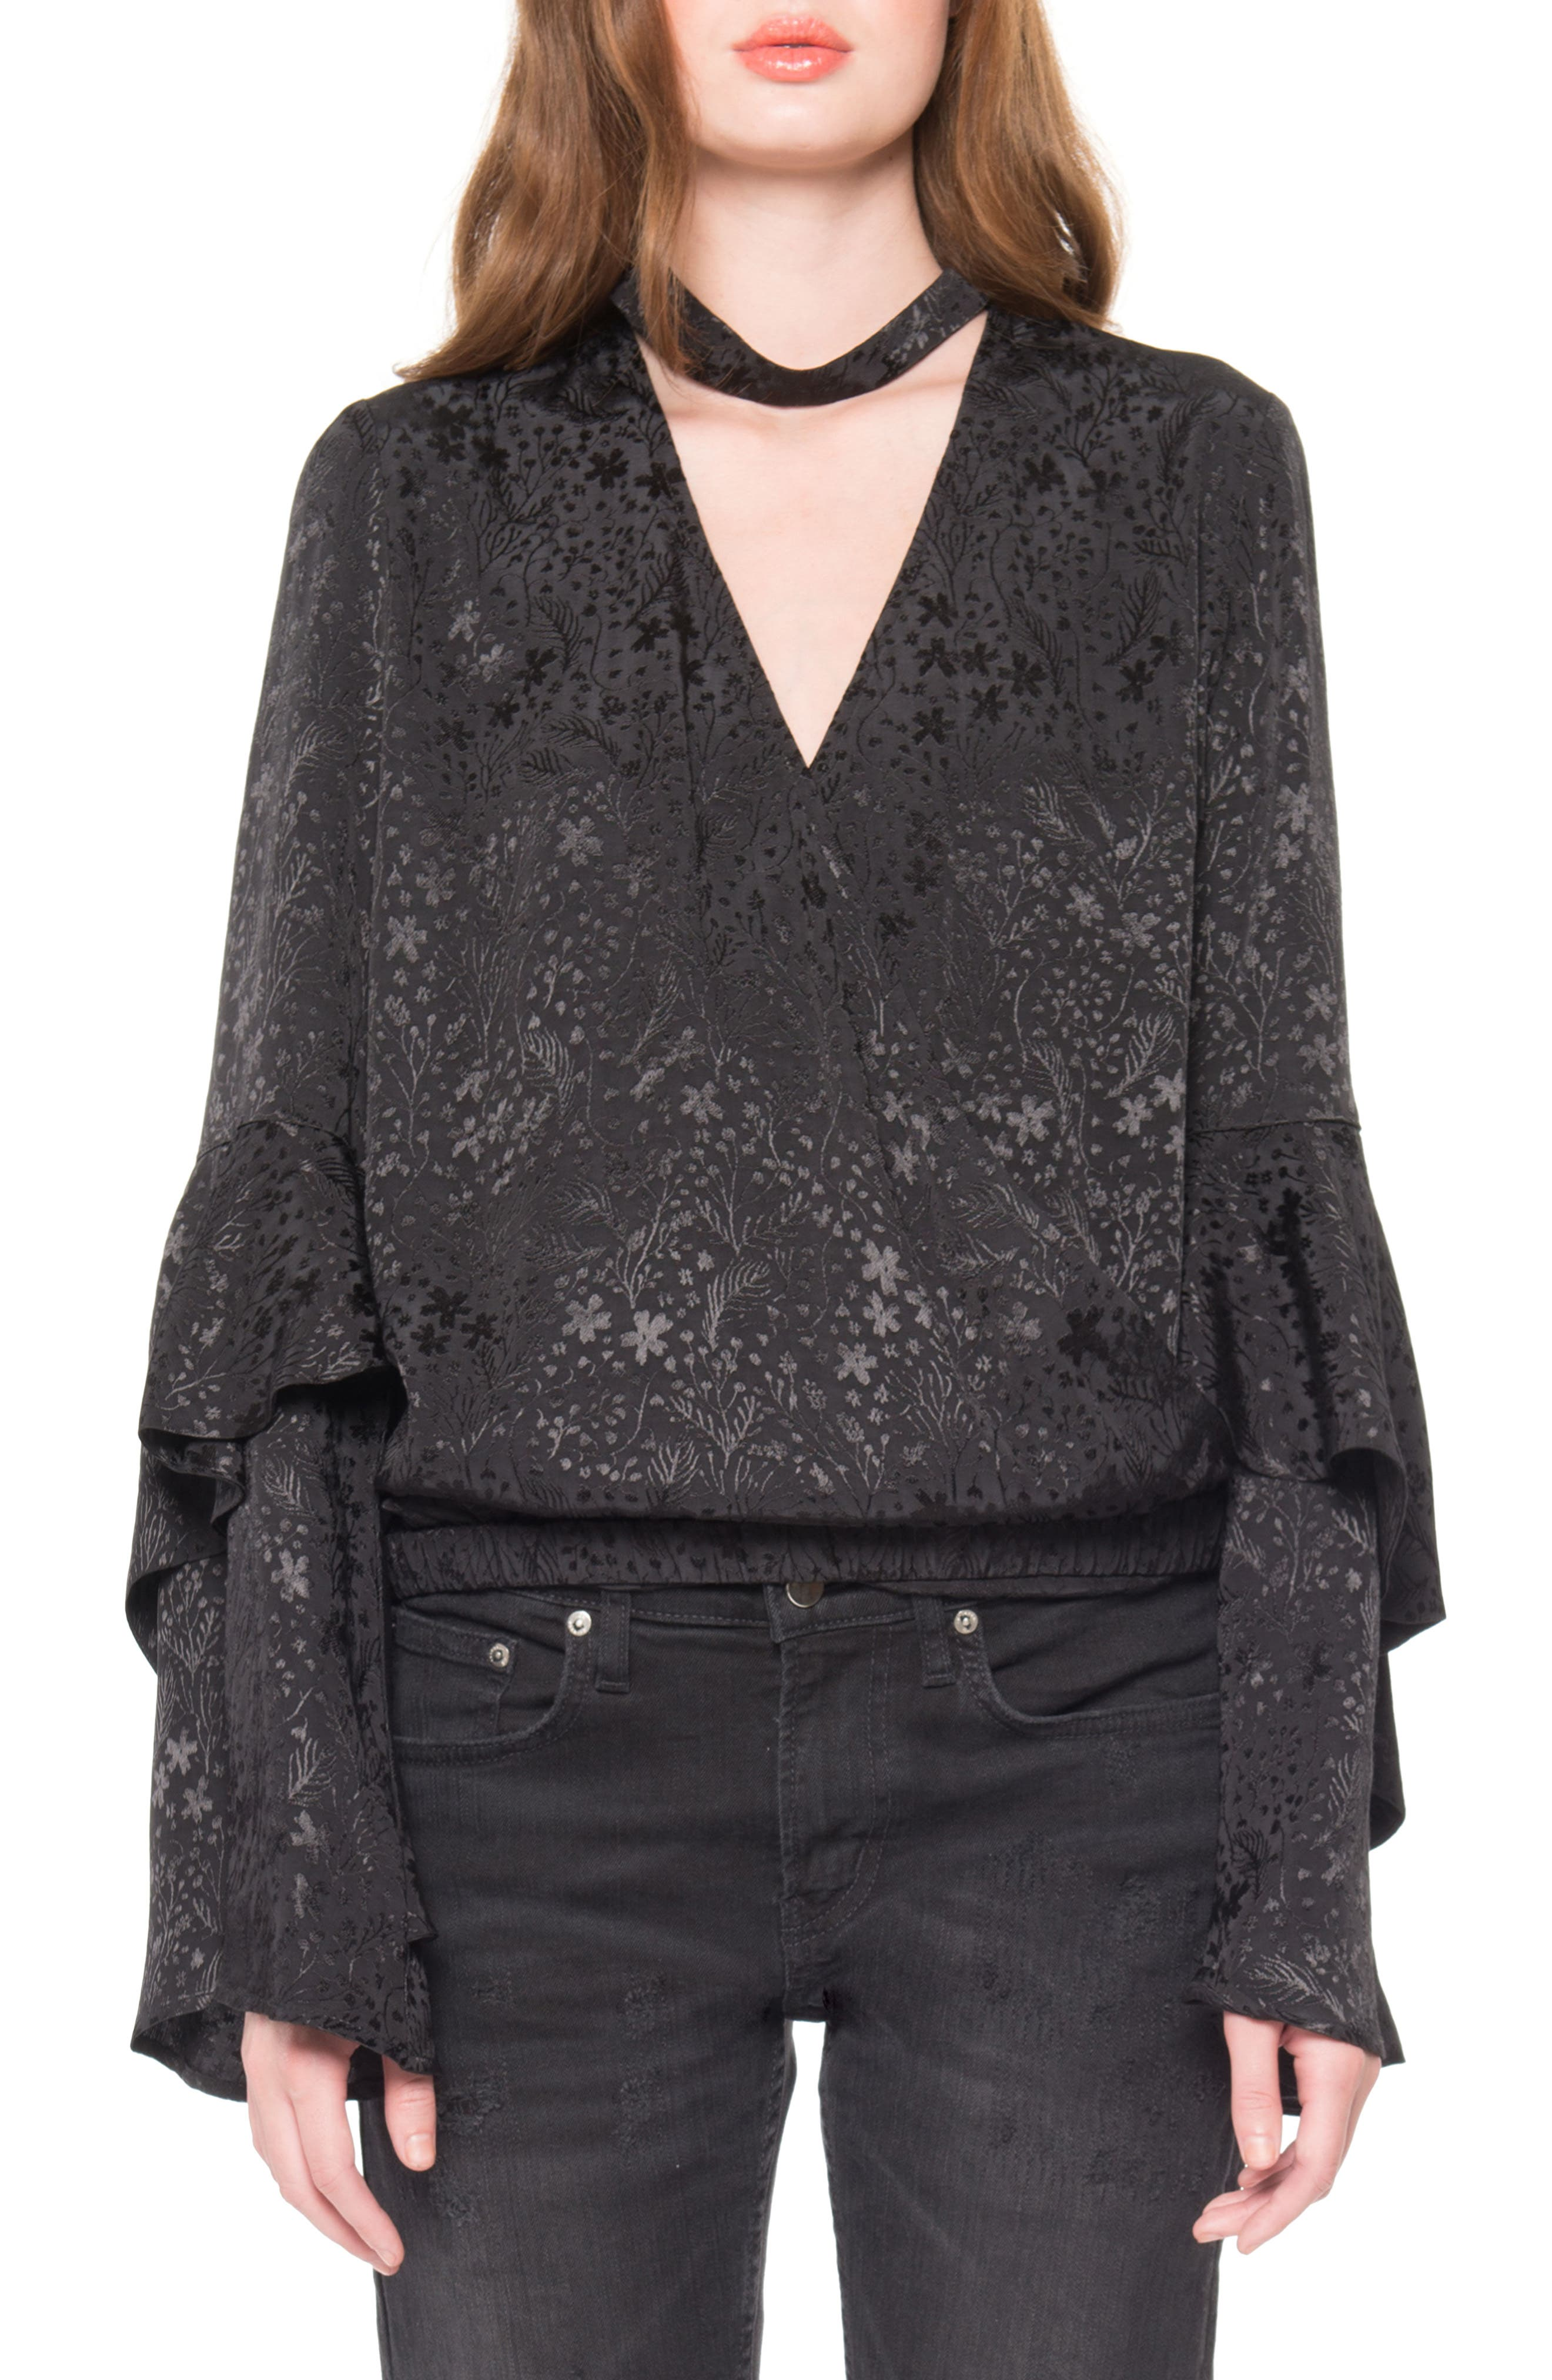 Alternate Image 1 Selected - Willow & Clay Jacquard Choker Top